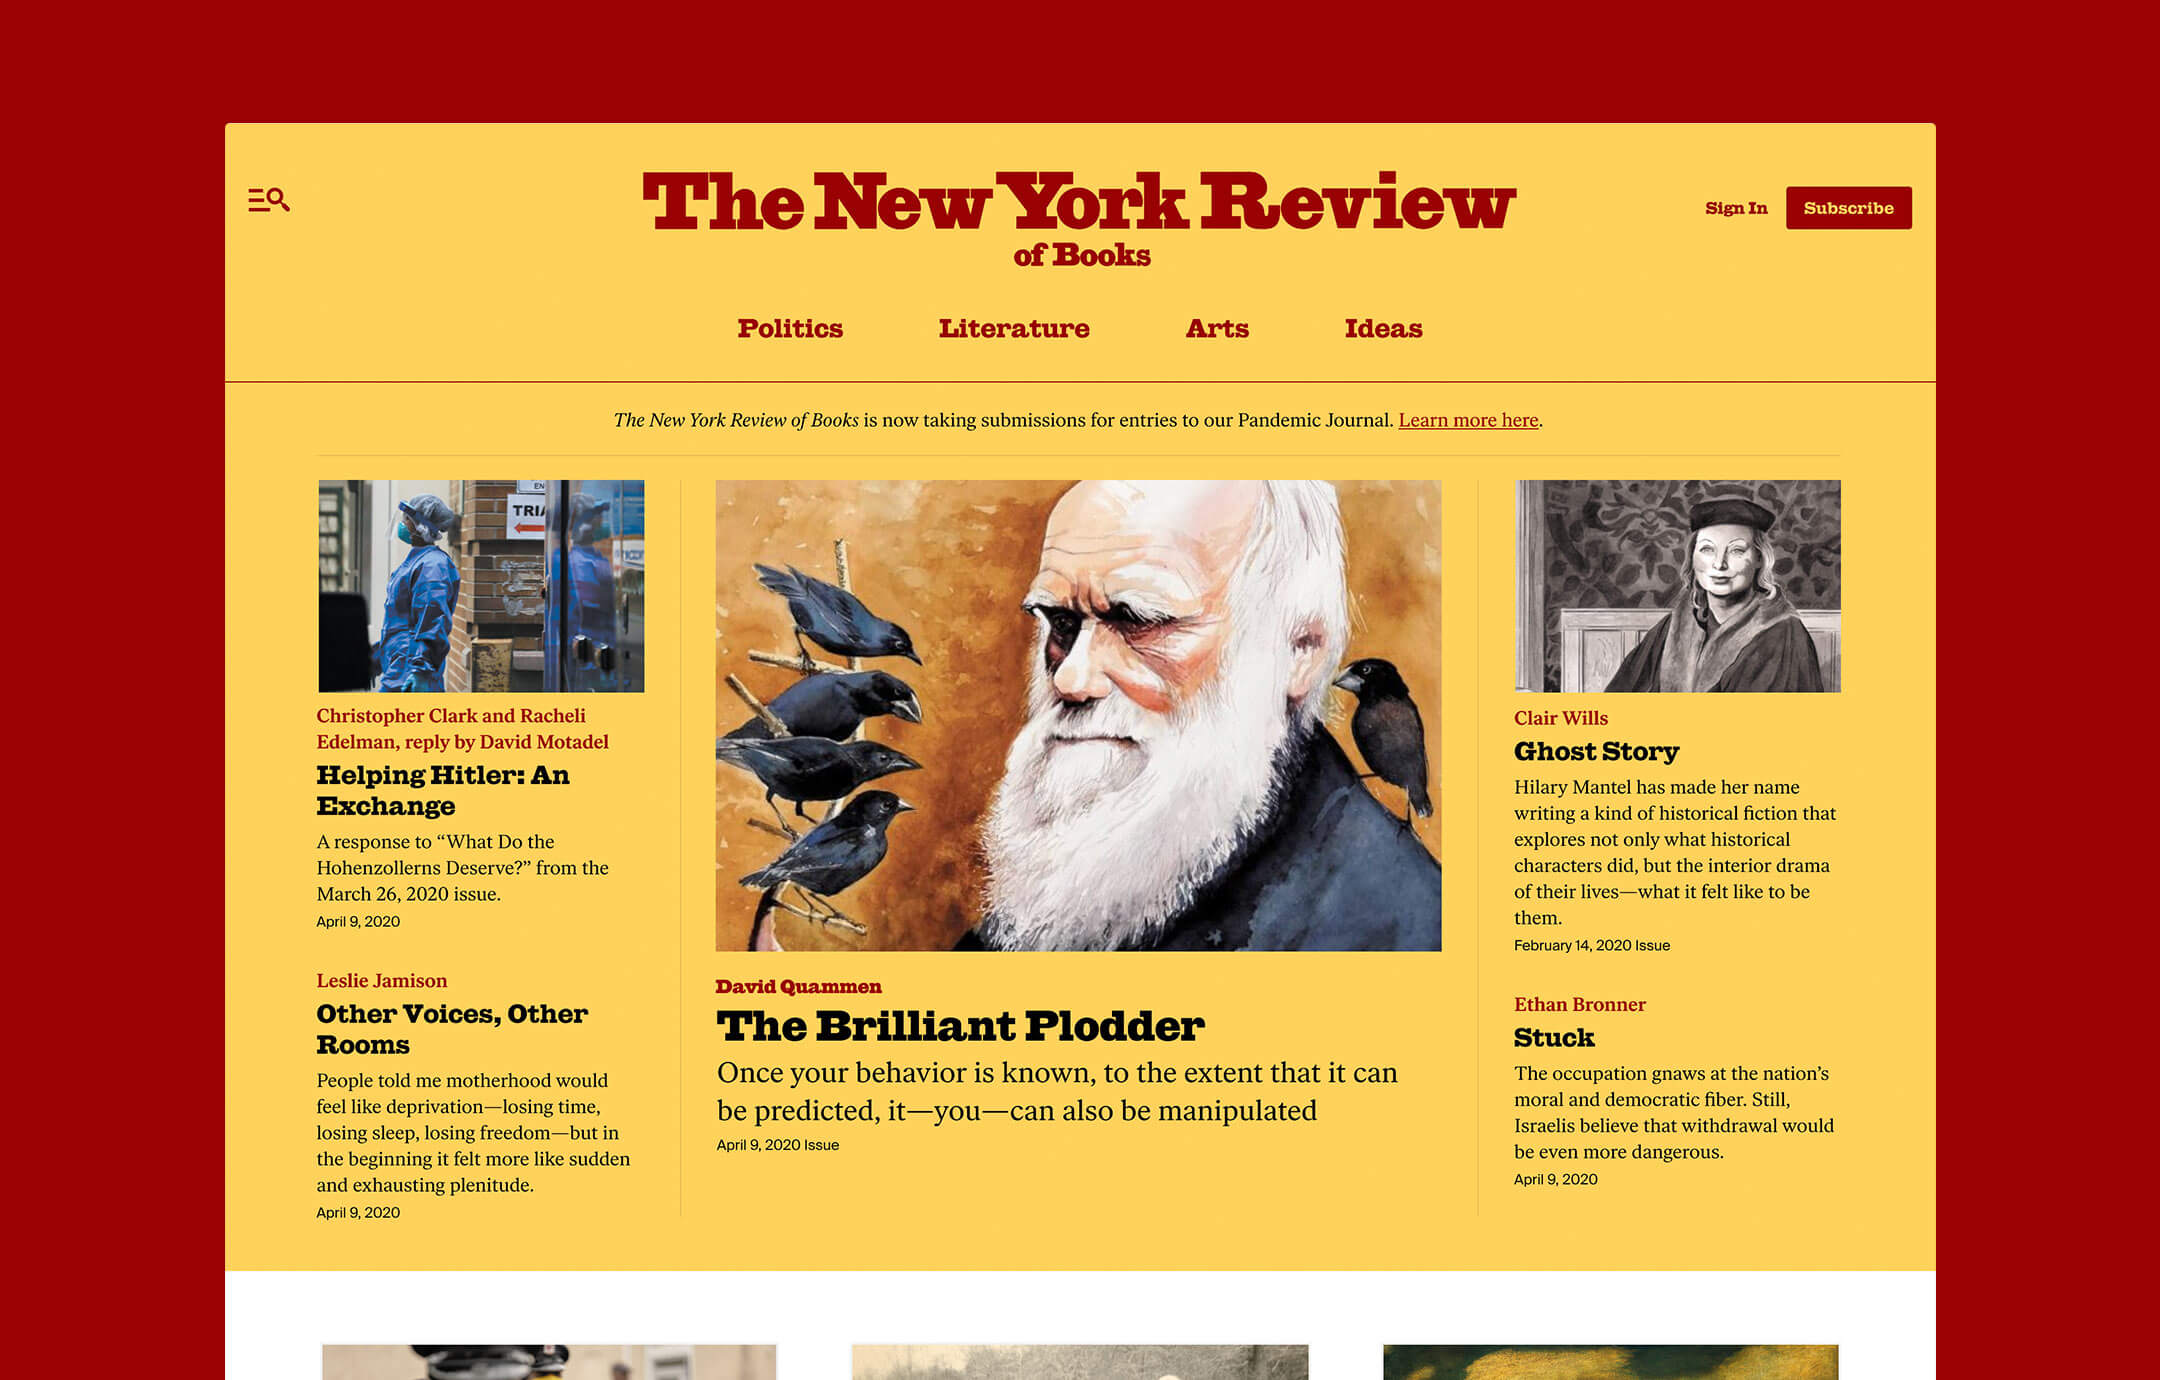 Screenshot of the New York Review of Books homepage